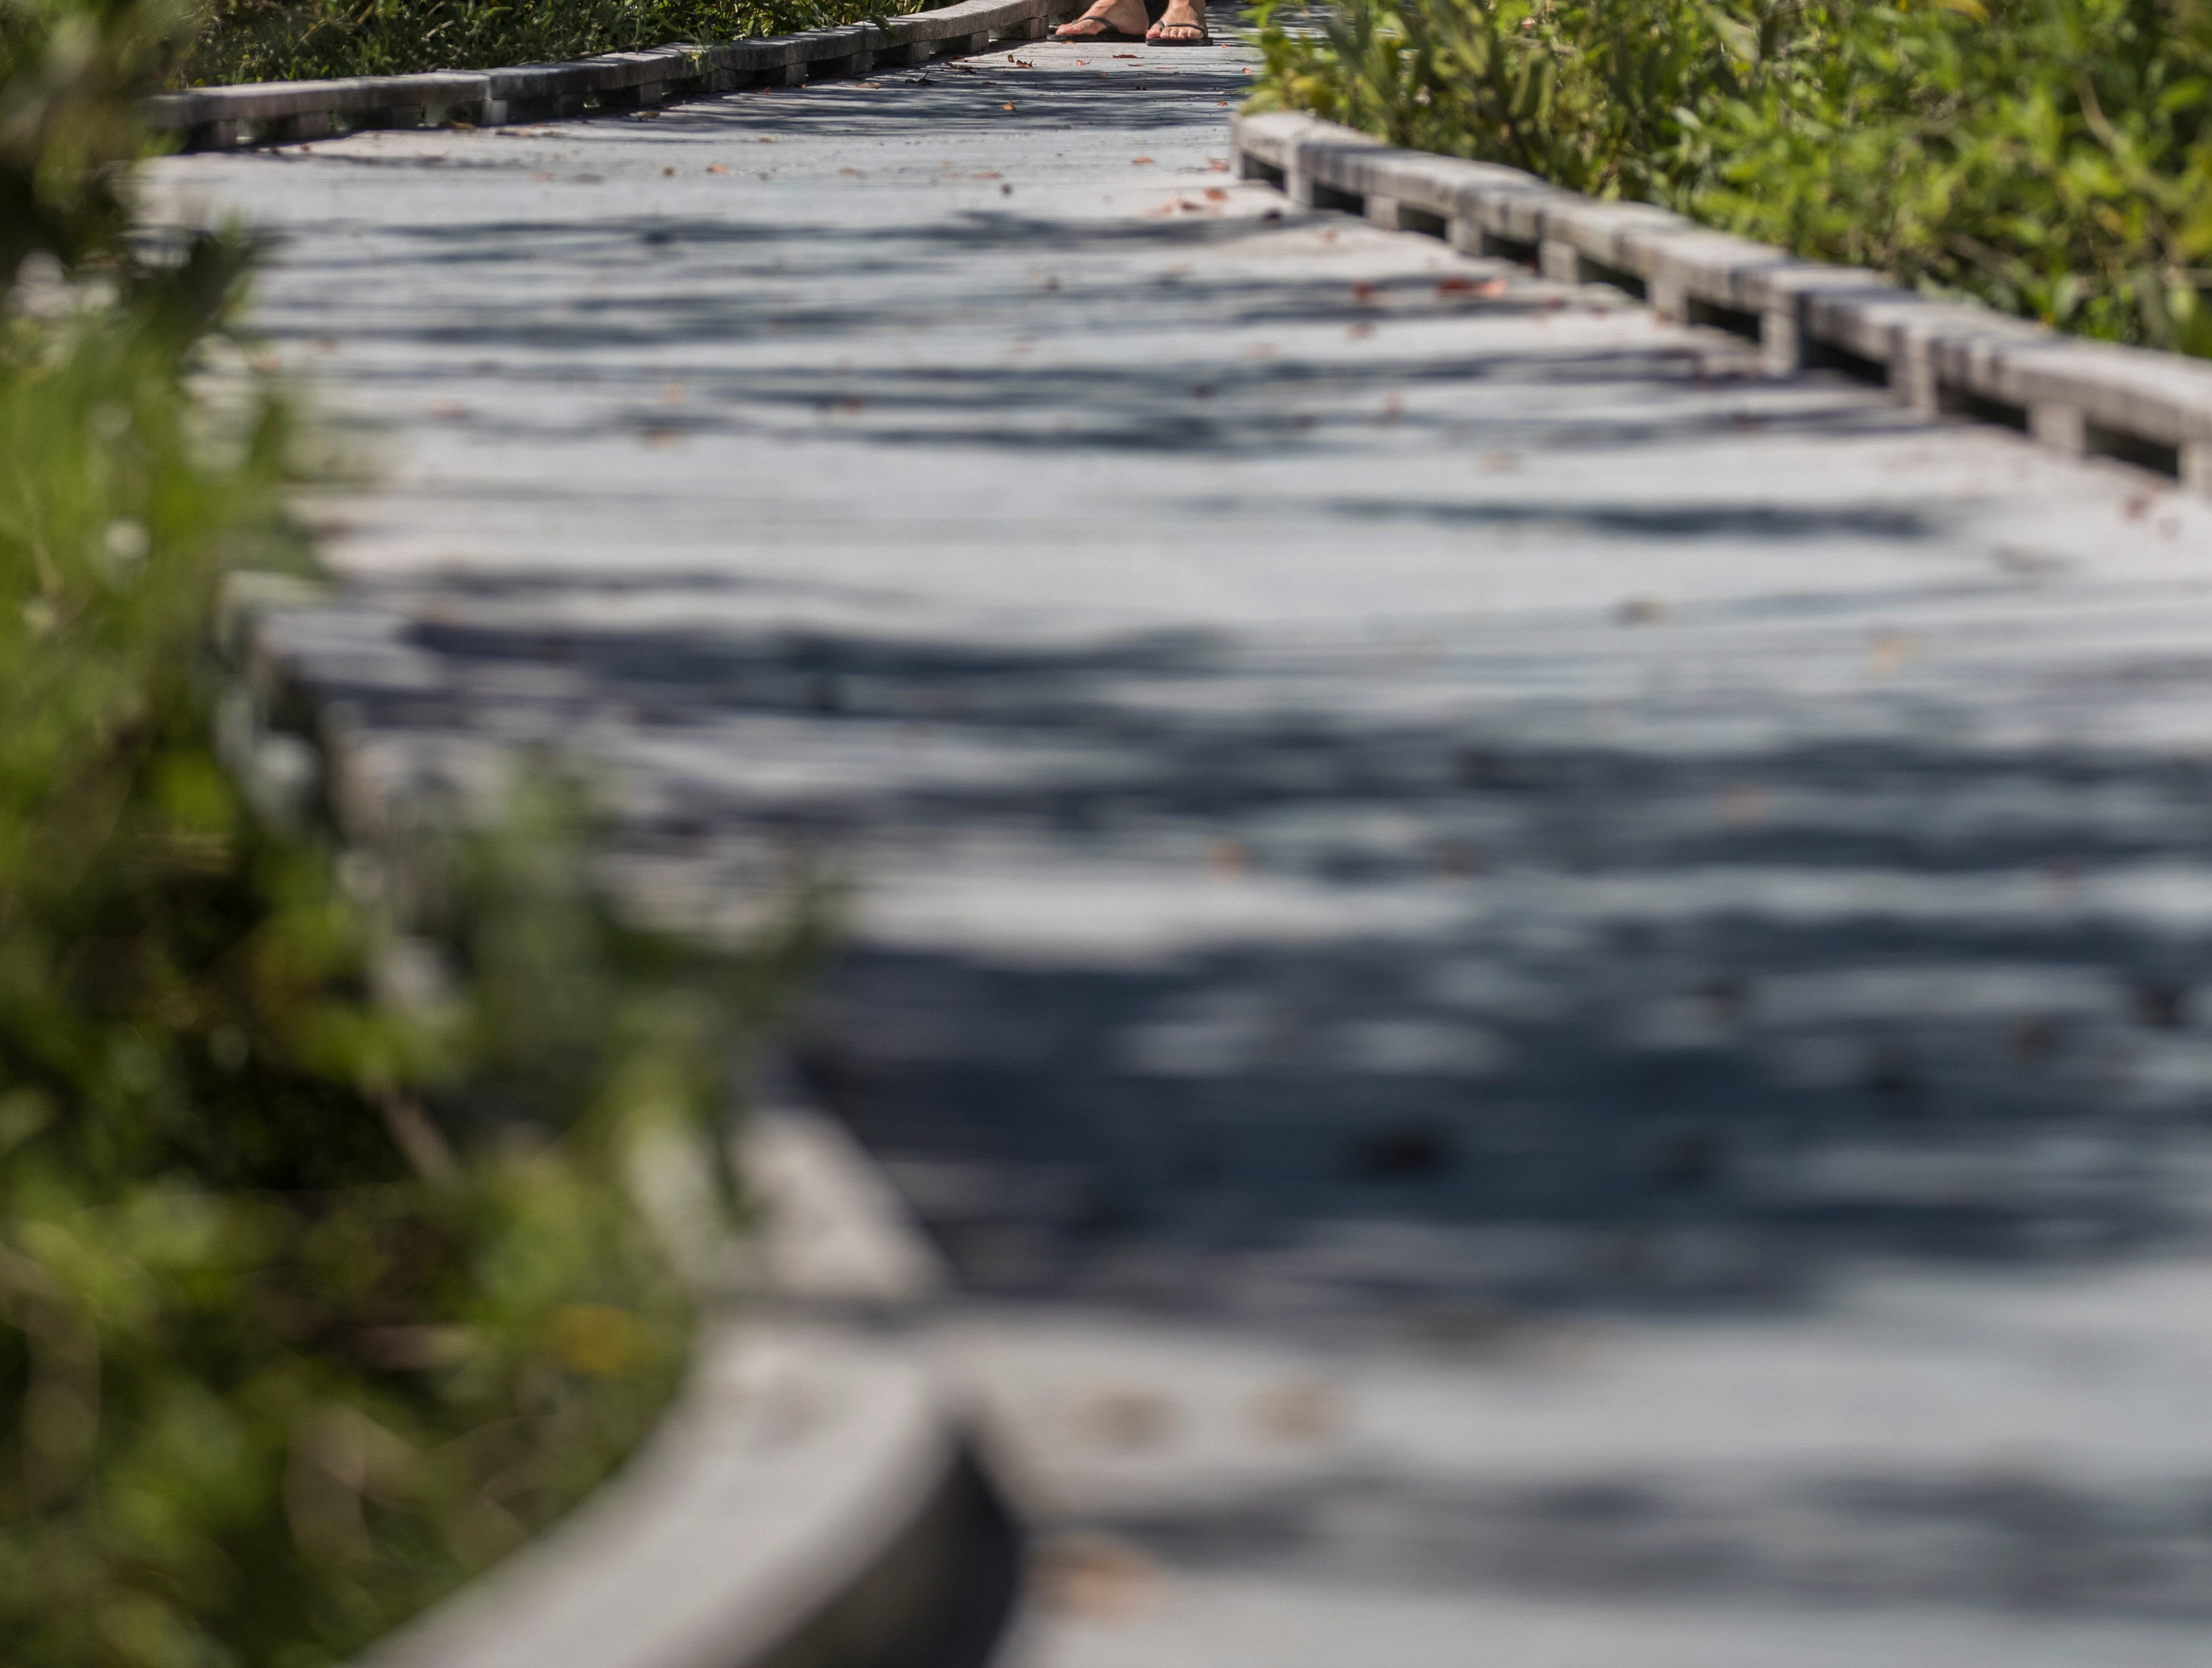 Tourists pause to snap a photo while visiting the Matanzas Pass Preserve boardwalk trail Tuesday afternoon, April23, 2019. The preserve is scheduled to undergo new upgrades.